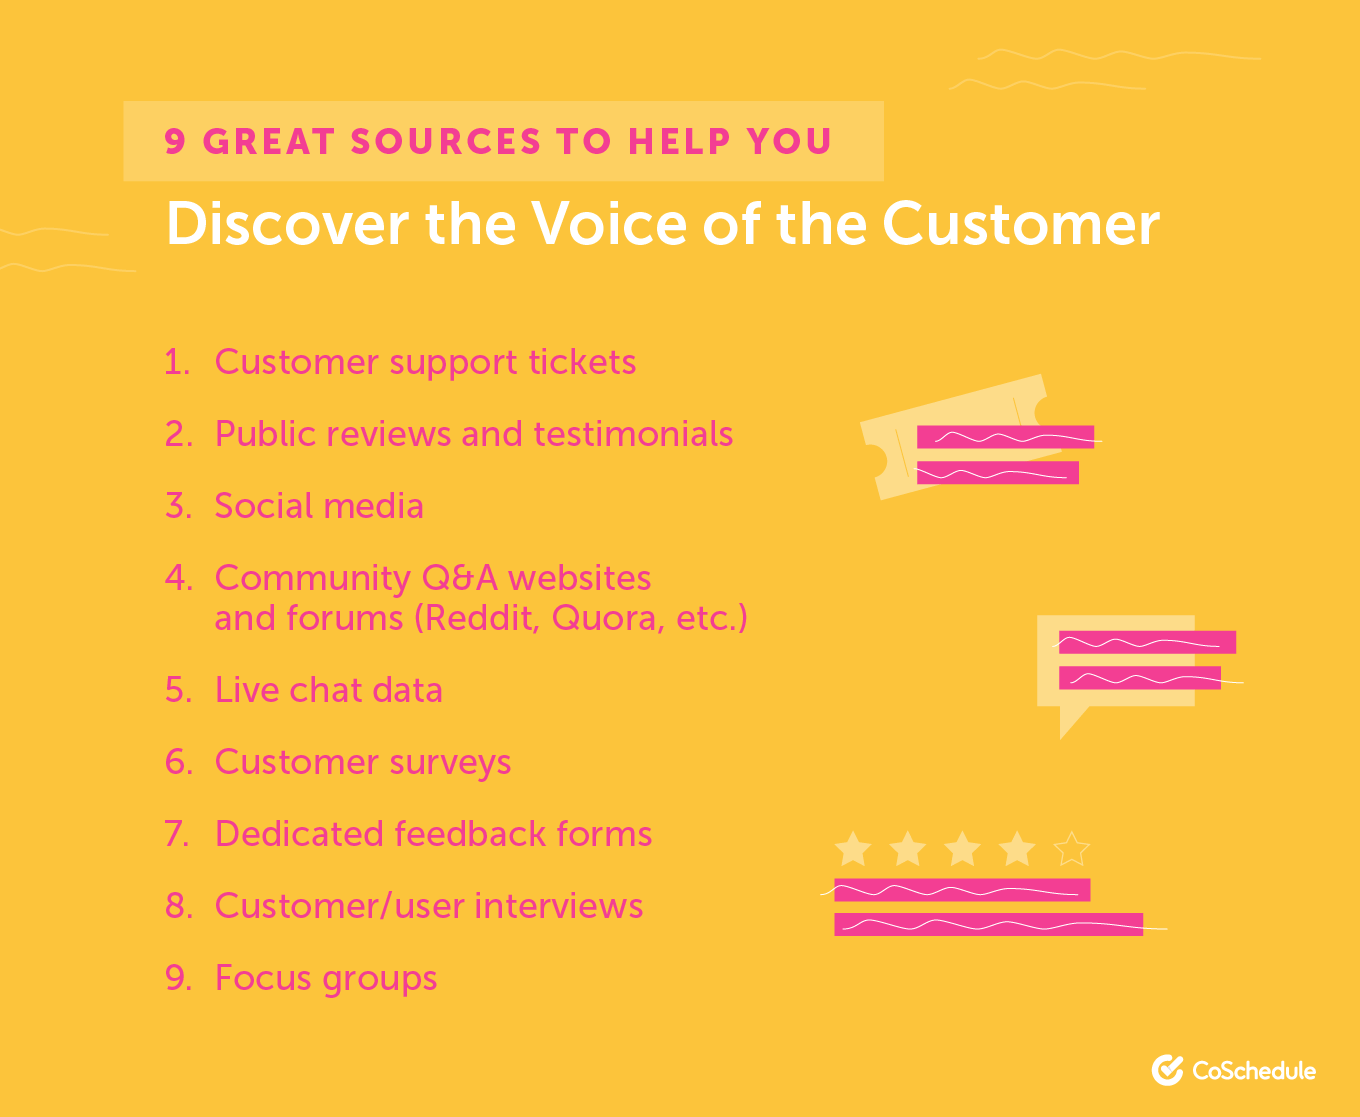 9 Great Sources to Help You Discover the Voice of the Customer